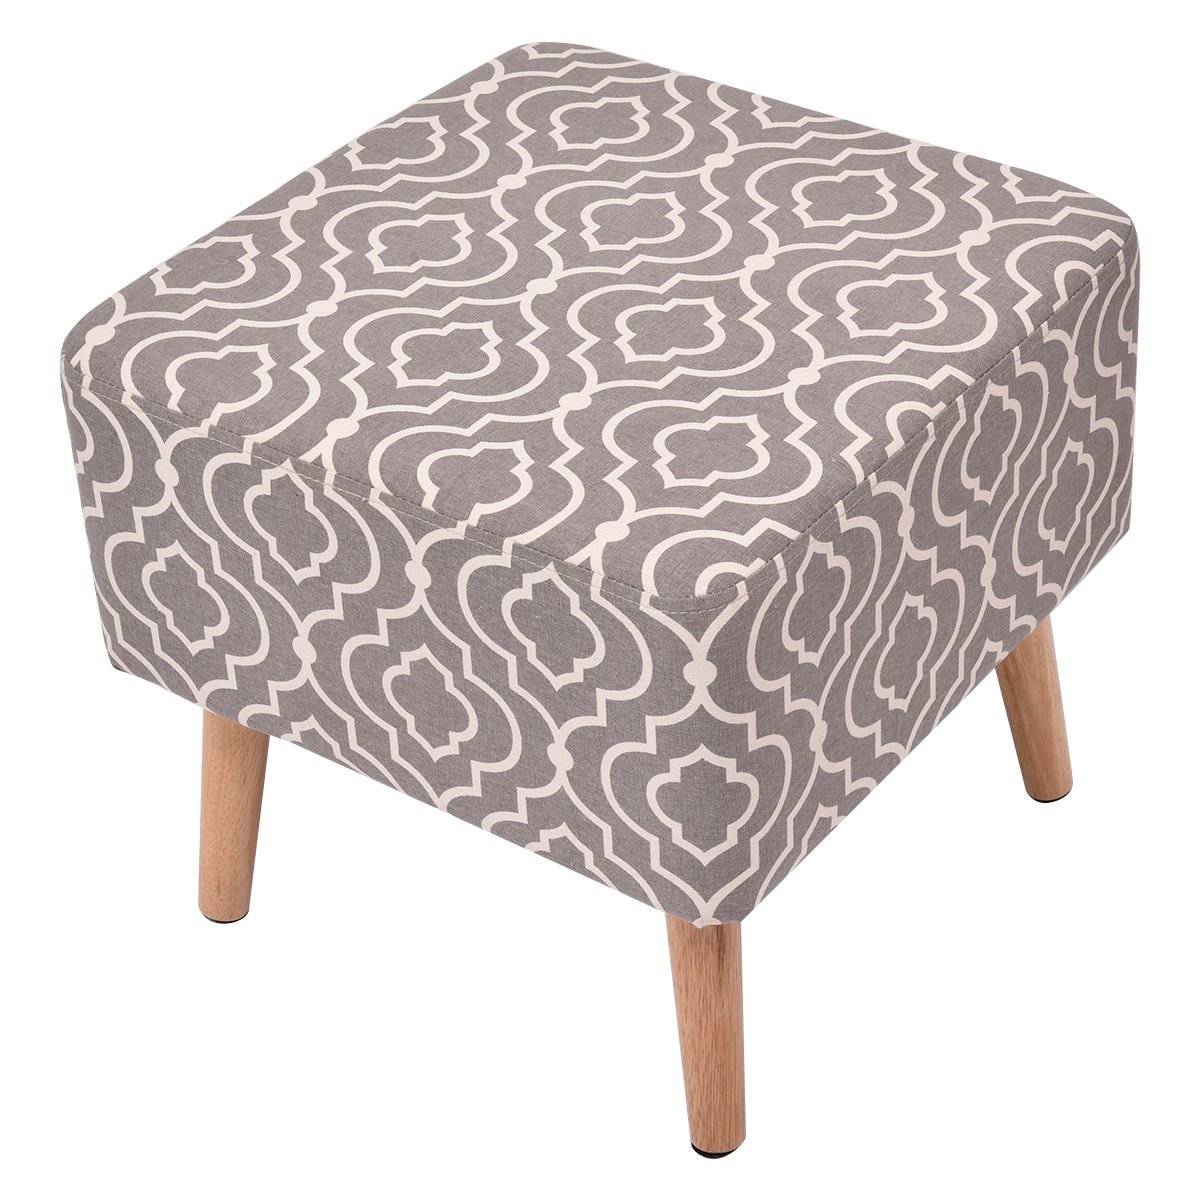 Polyester Cover Square Stool Seat Home Furniture Decor With 4 Wooden Solid Legs